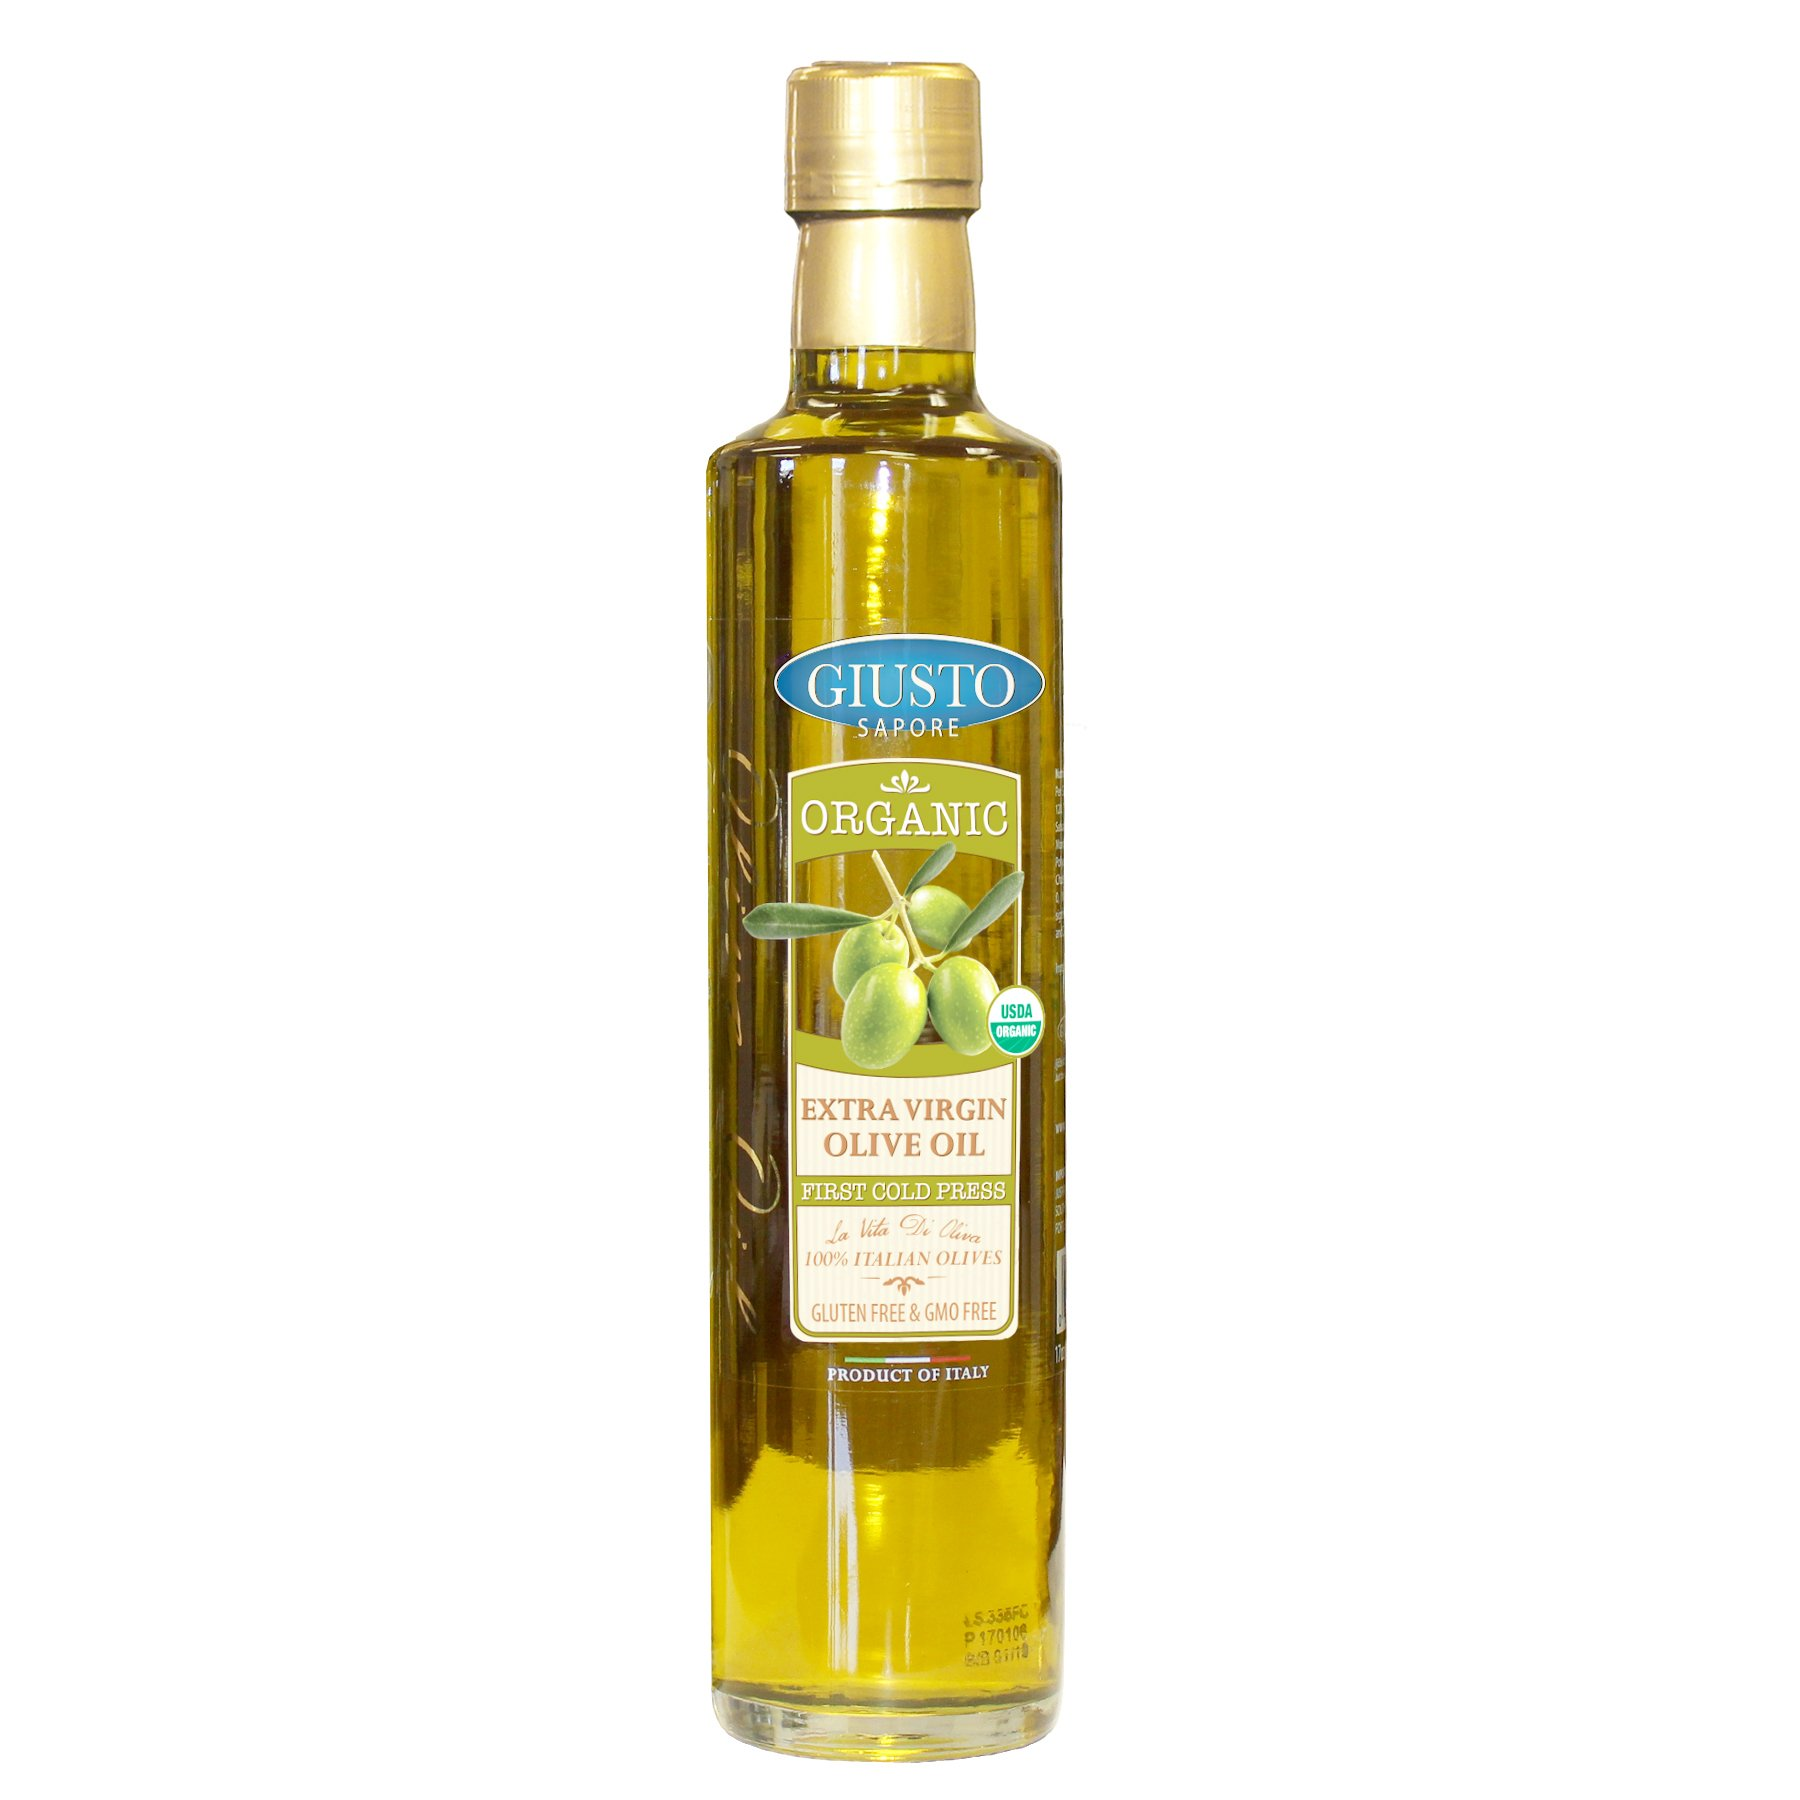 Giusto Sapore Italian Olive Oil - Organic Extra Virgin 17oz - Premium Gluten Free Gourmet Brand - Imported from Italy and Family Owned